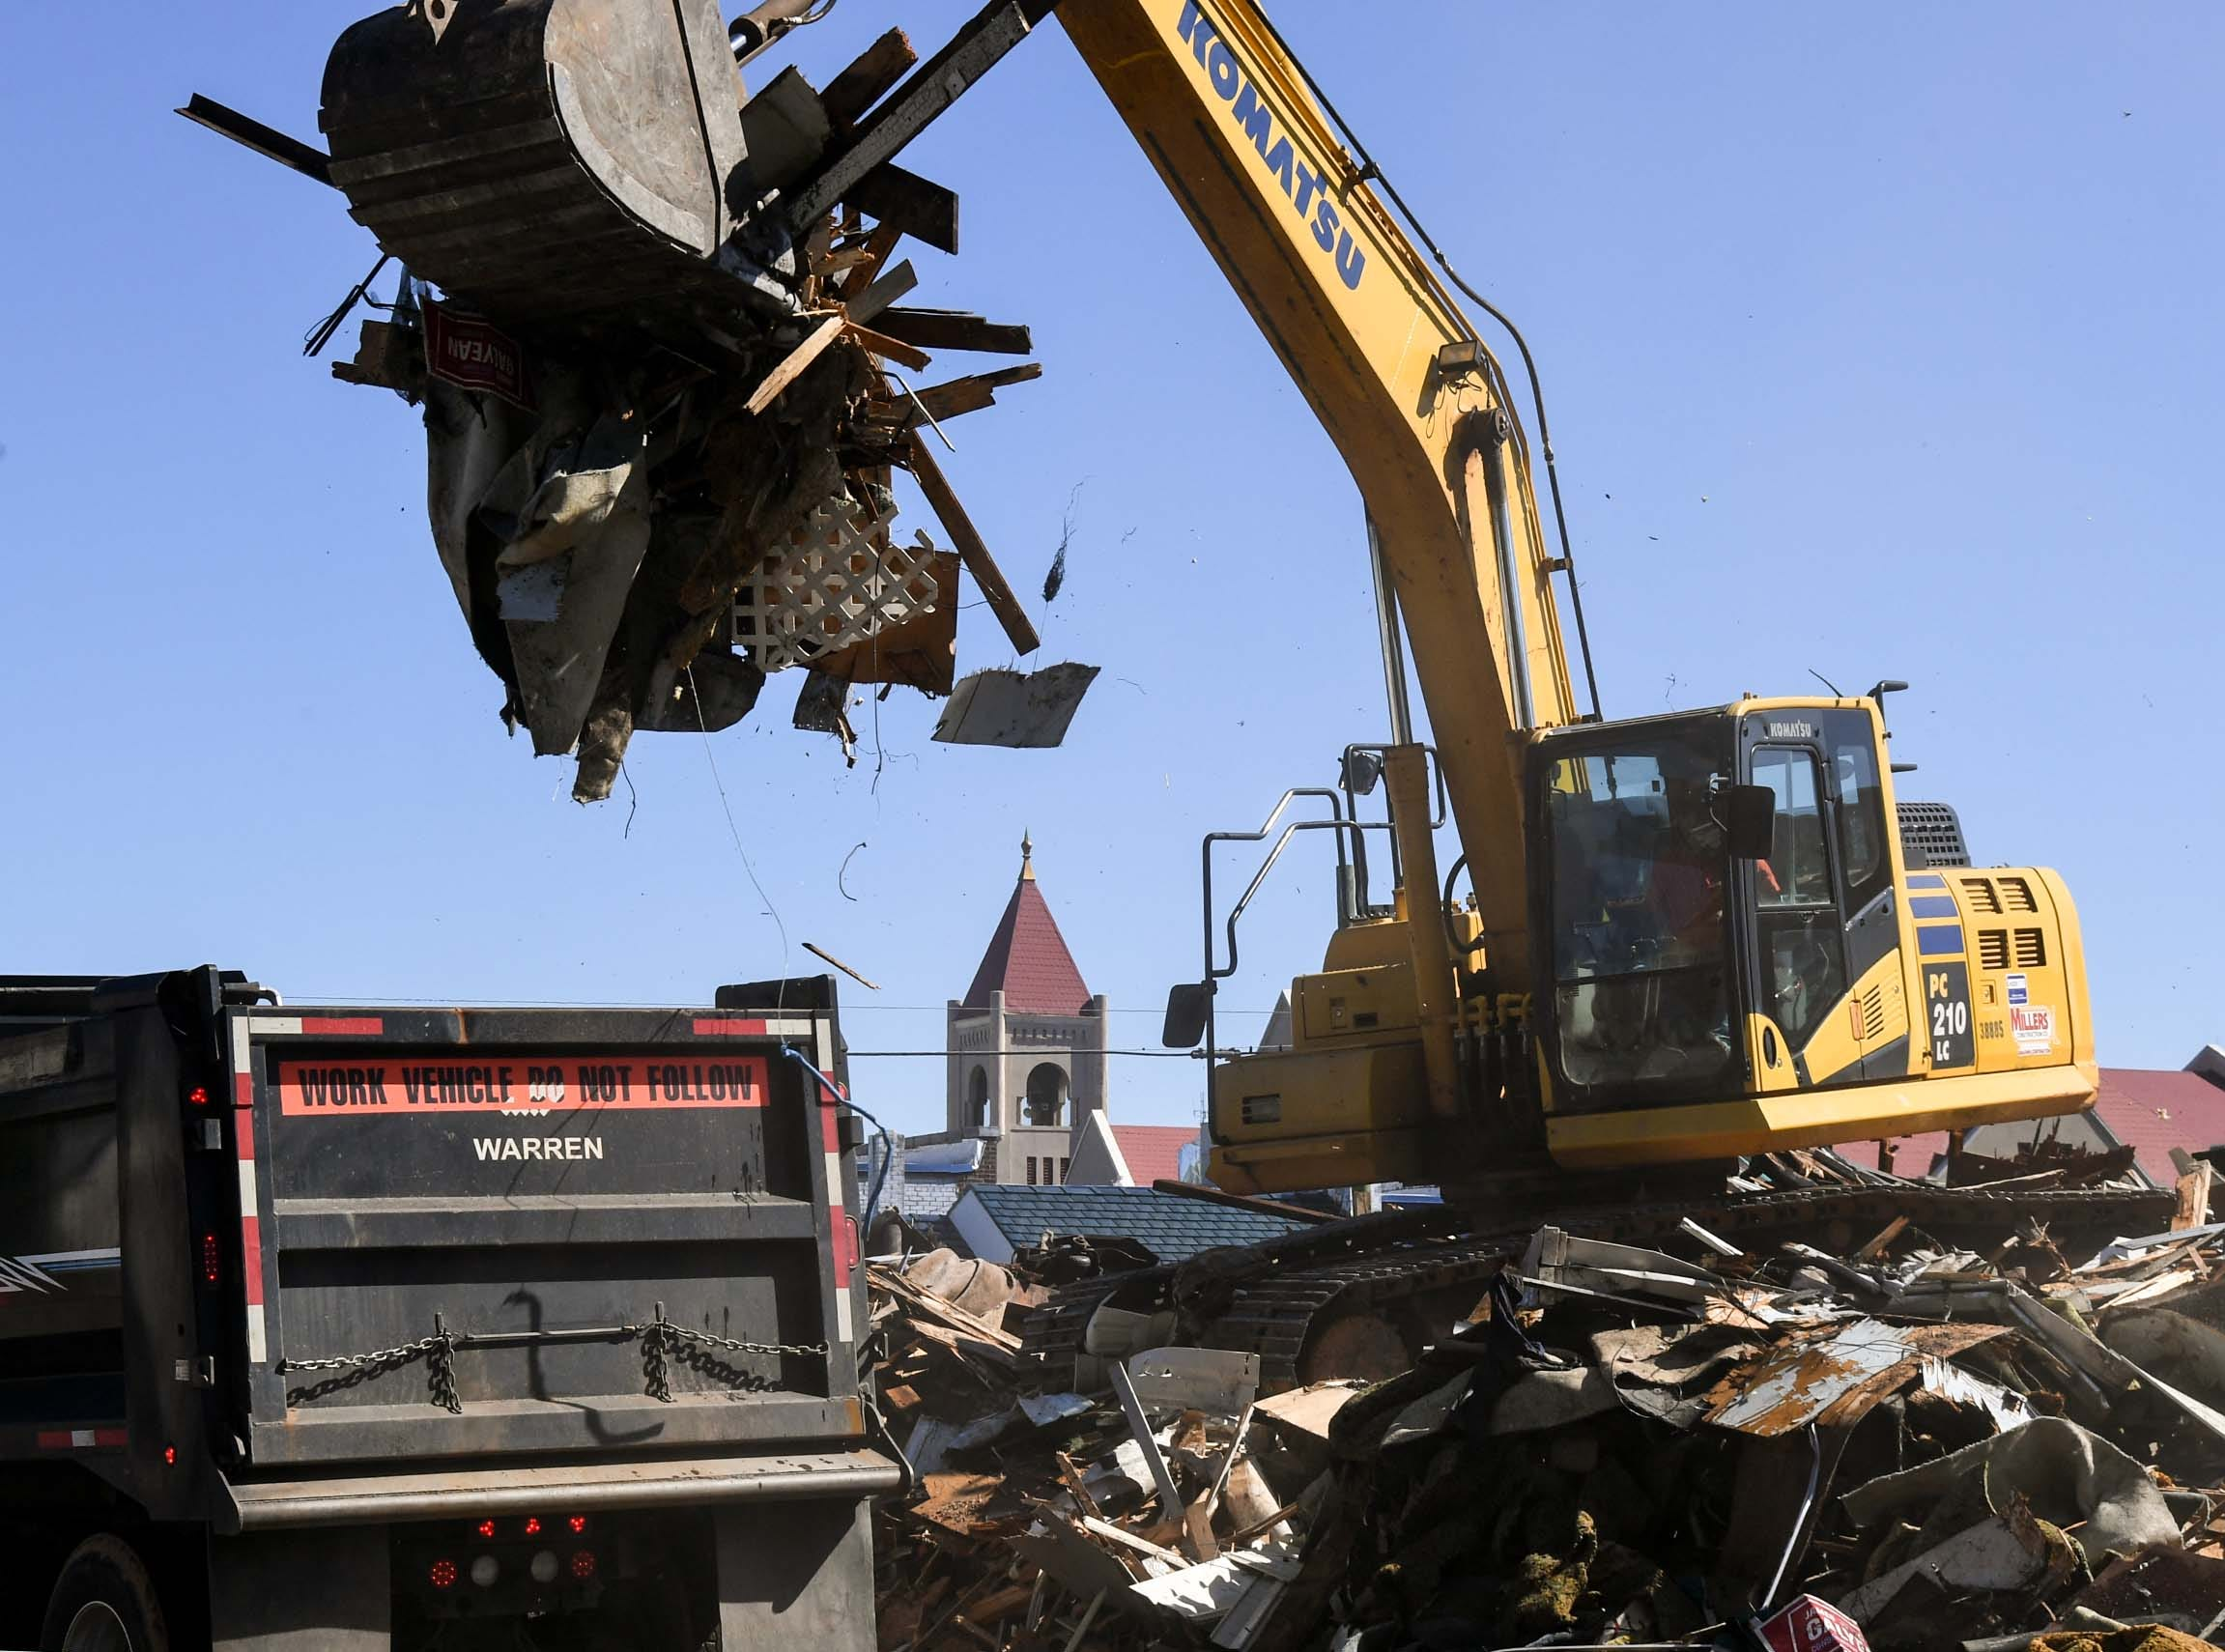 Miller Construction of Anderson load a dump truck with debris in view of city hall during demolition of the 600 South Main Street building Monday in Anderson. The building was used as a city planning and codes for years after McDougalds Funeral Home occupied it from 1934 to 1968 as their South Chapel. Over 150 truck loads of debris is expected to be sent to the Starr landfill, said supervisor Matt Miller at the site.